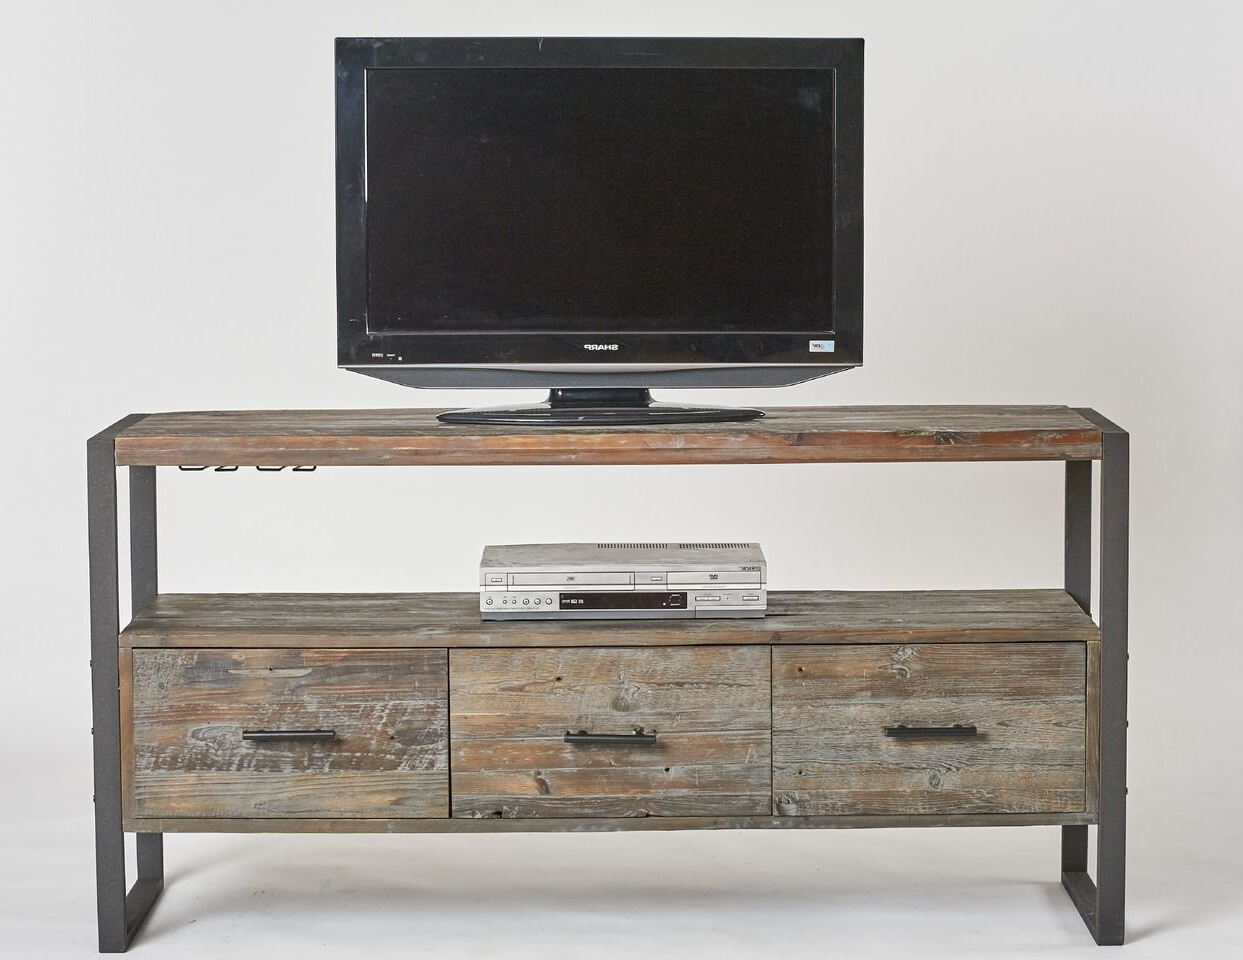 Rustic Antique Tv Stand | Wayfair In Century Sky 60 Inch Tv Stands (Gallery 17 of 20)